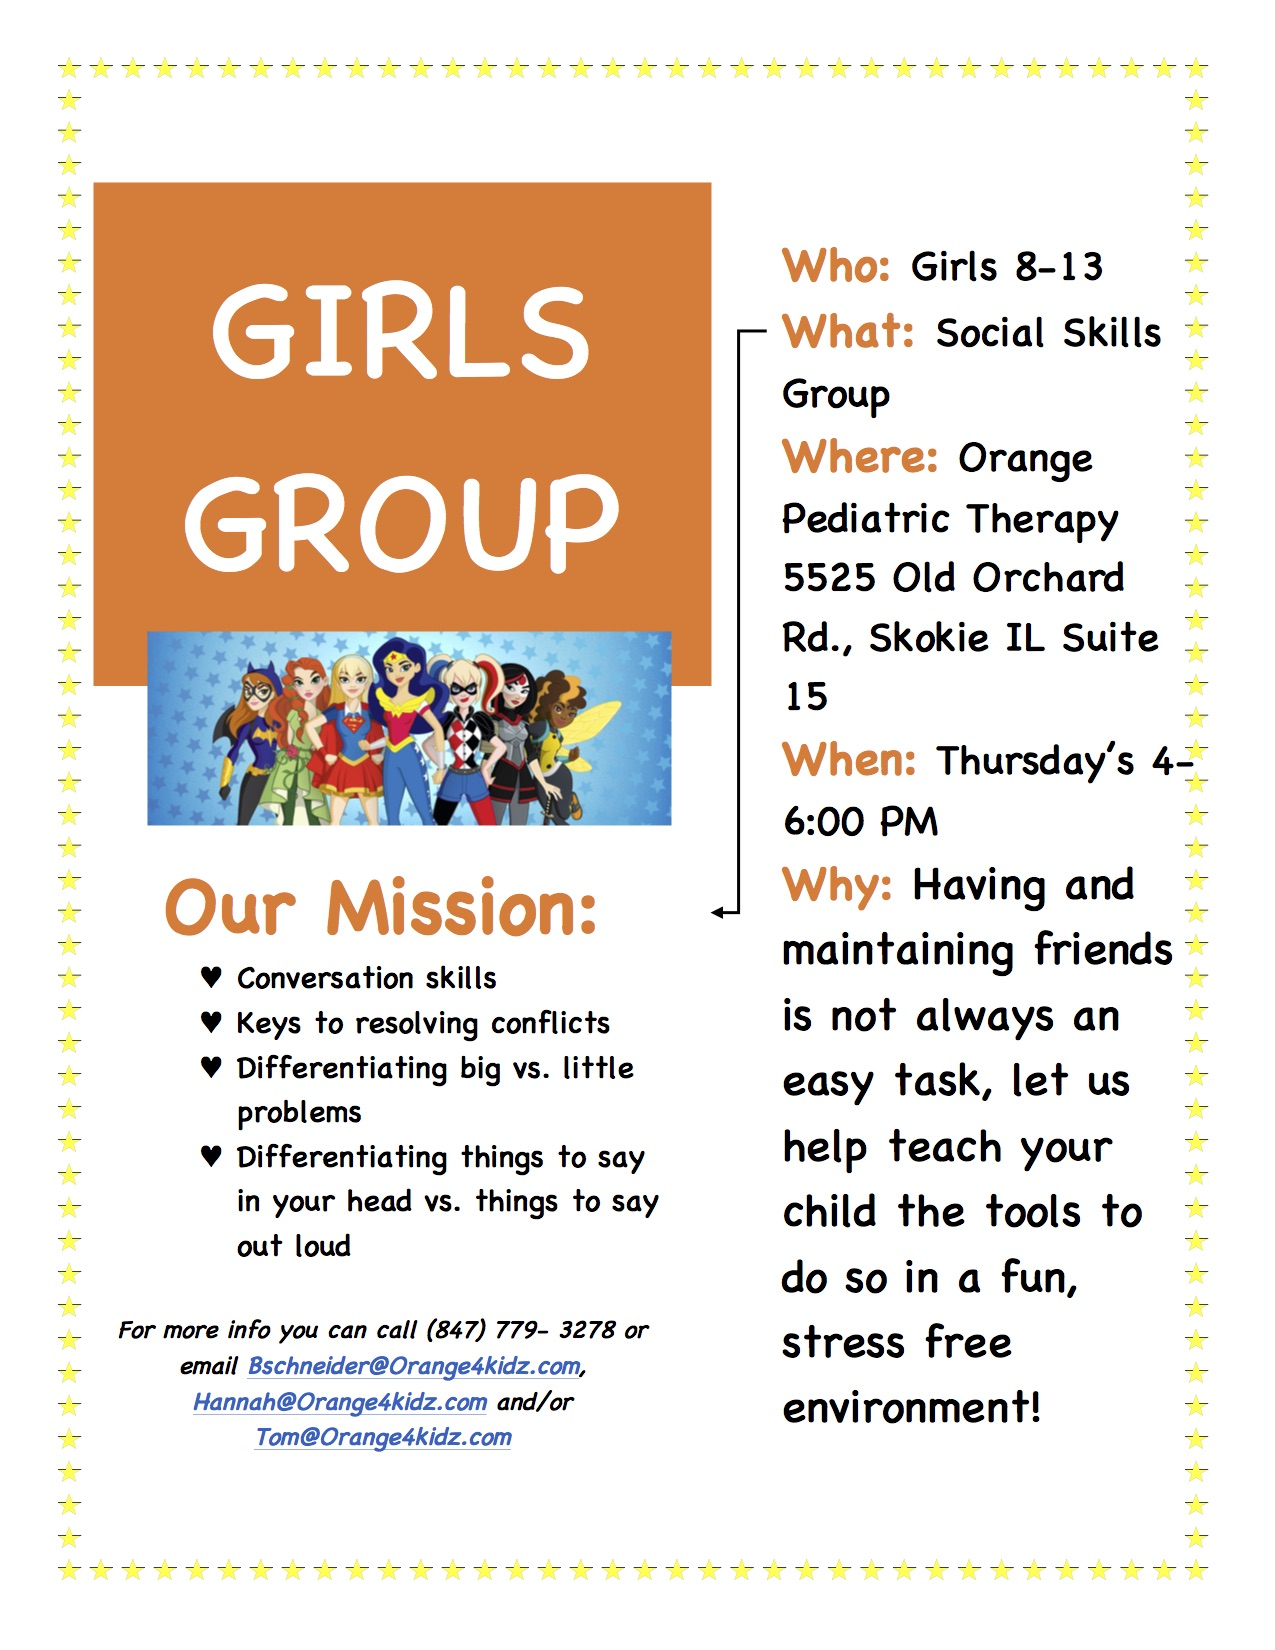 Girls Group! - CLICK FOR CALENDAR OF ACTIVITIES!